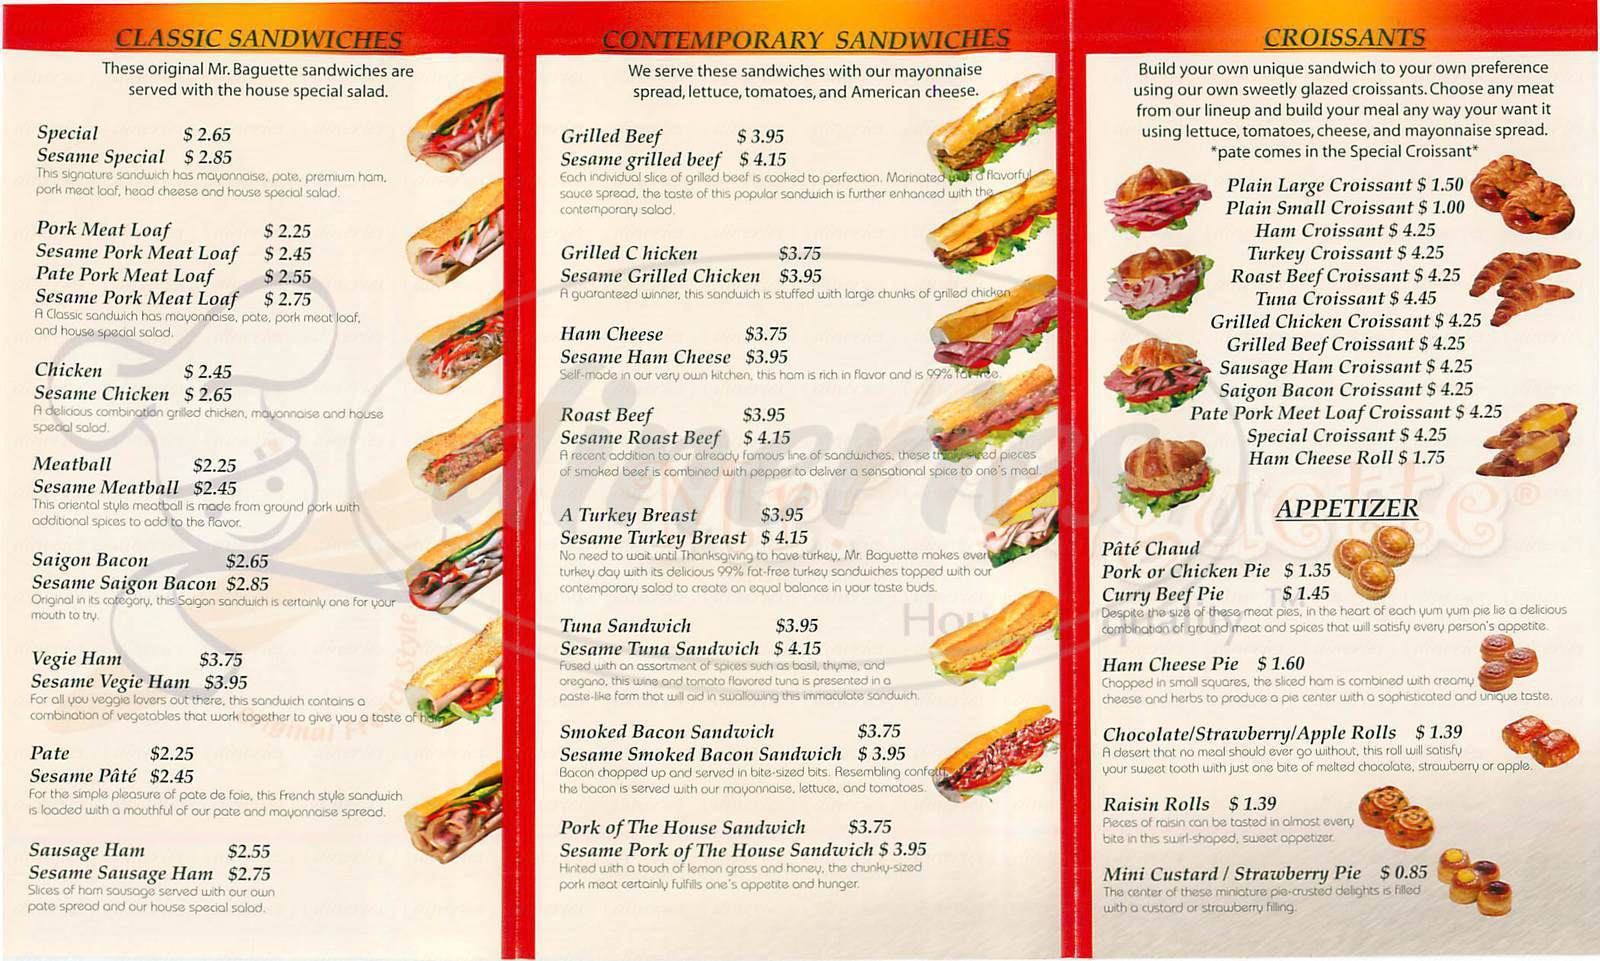 menu for Mr. Baguette